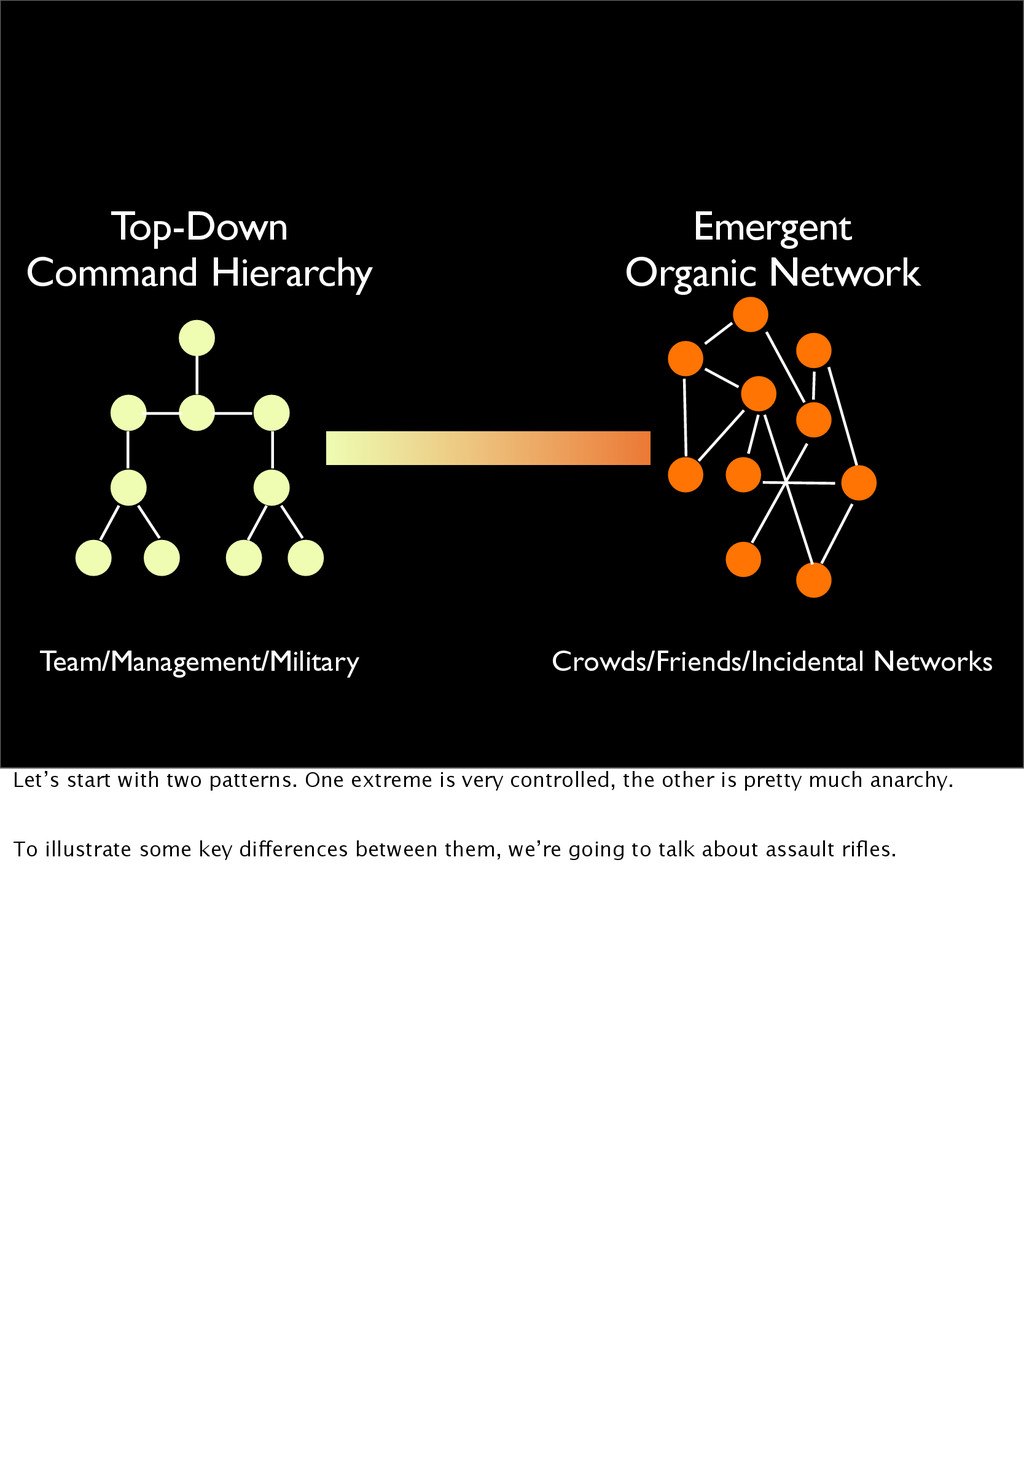 Top-Down Command Hierarchy Emergent Organic Net...